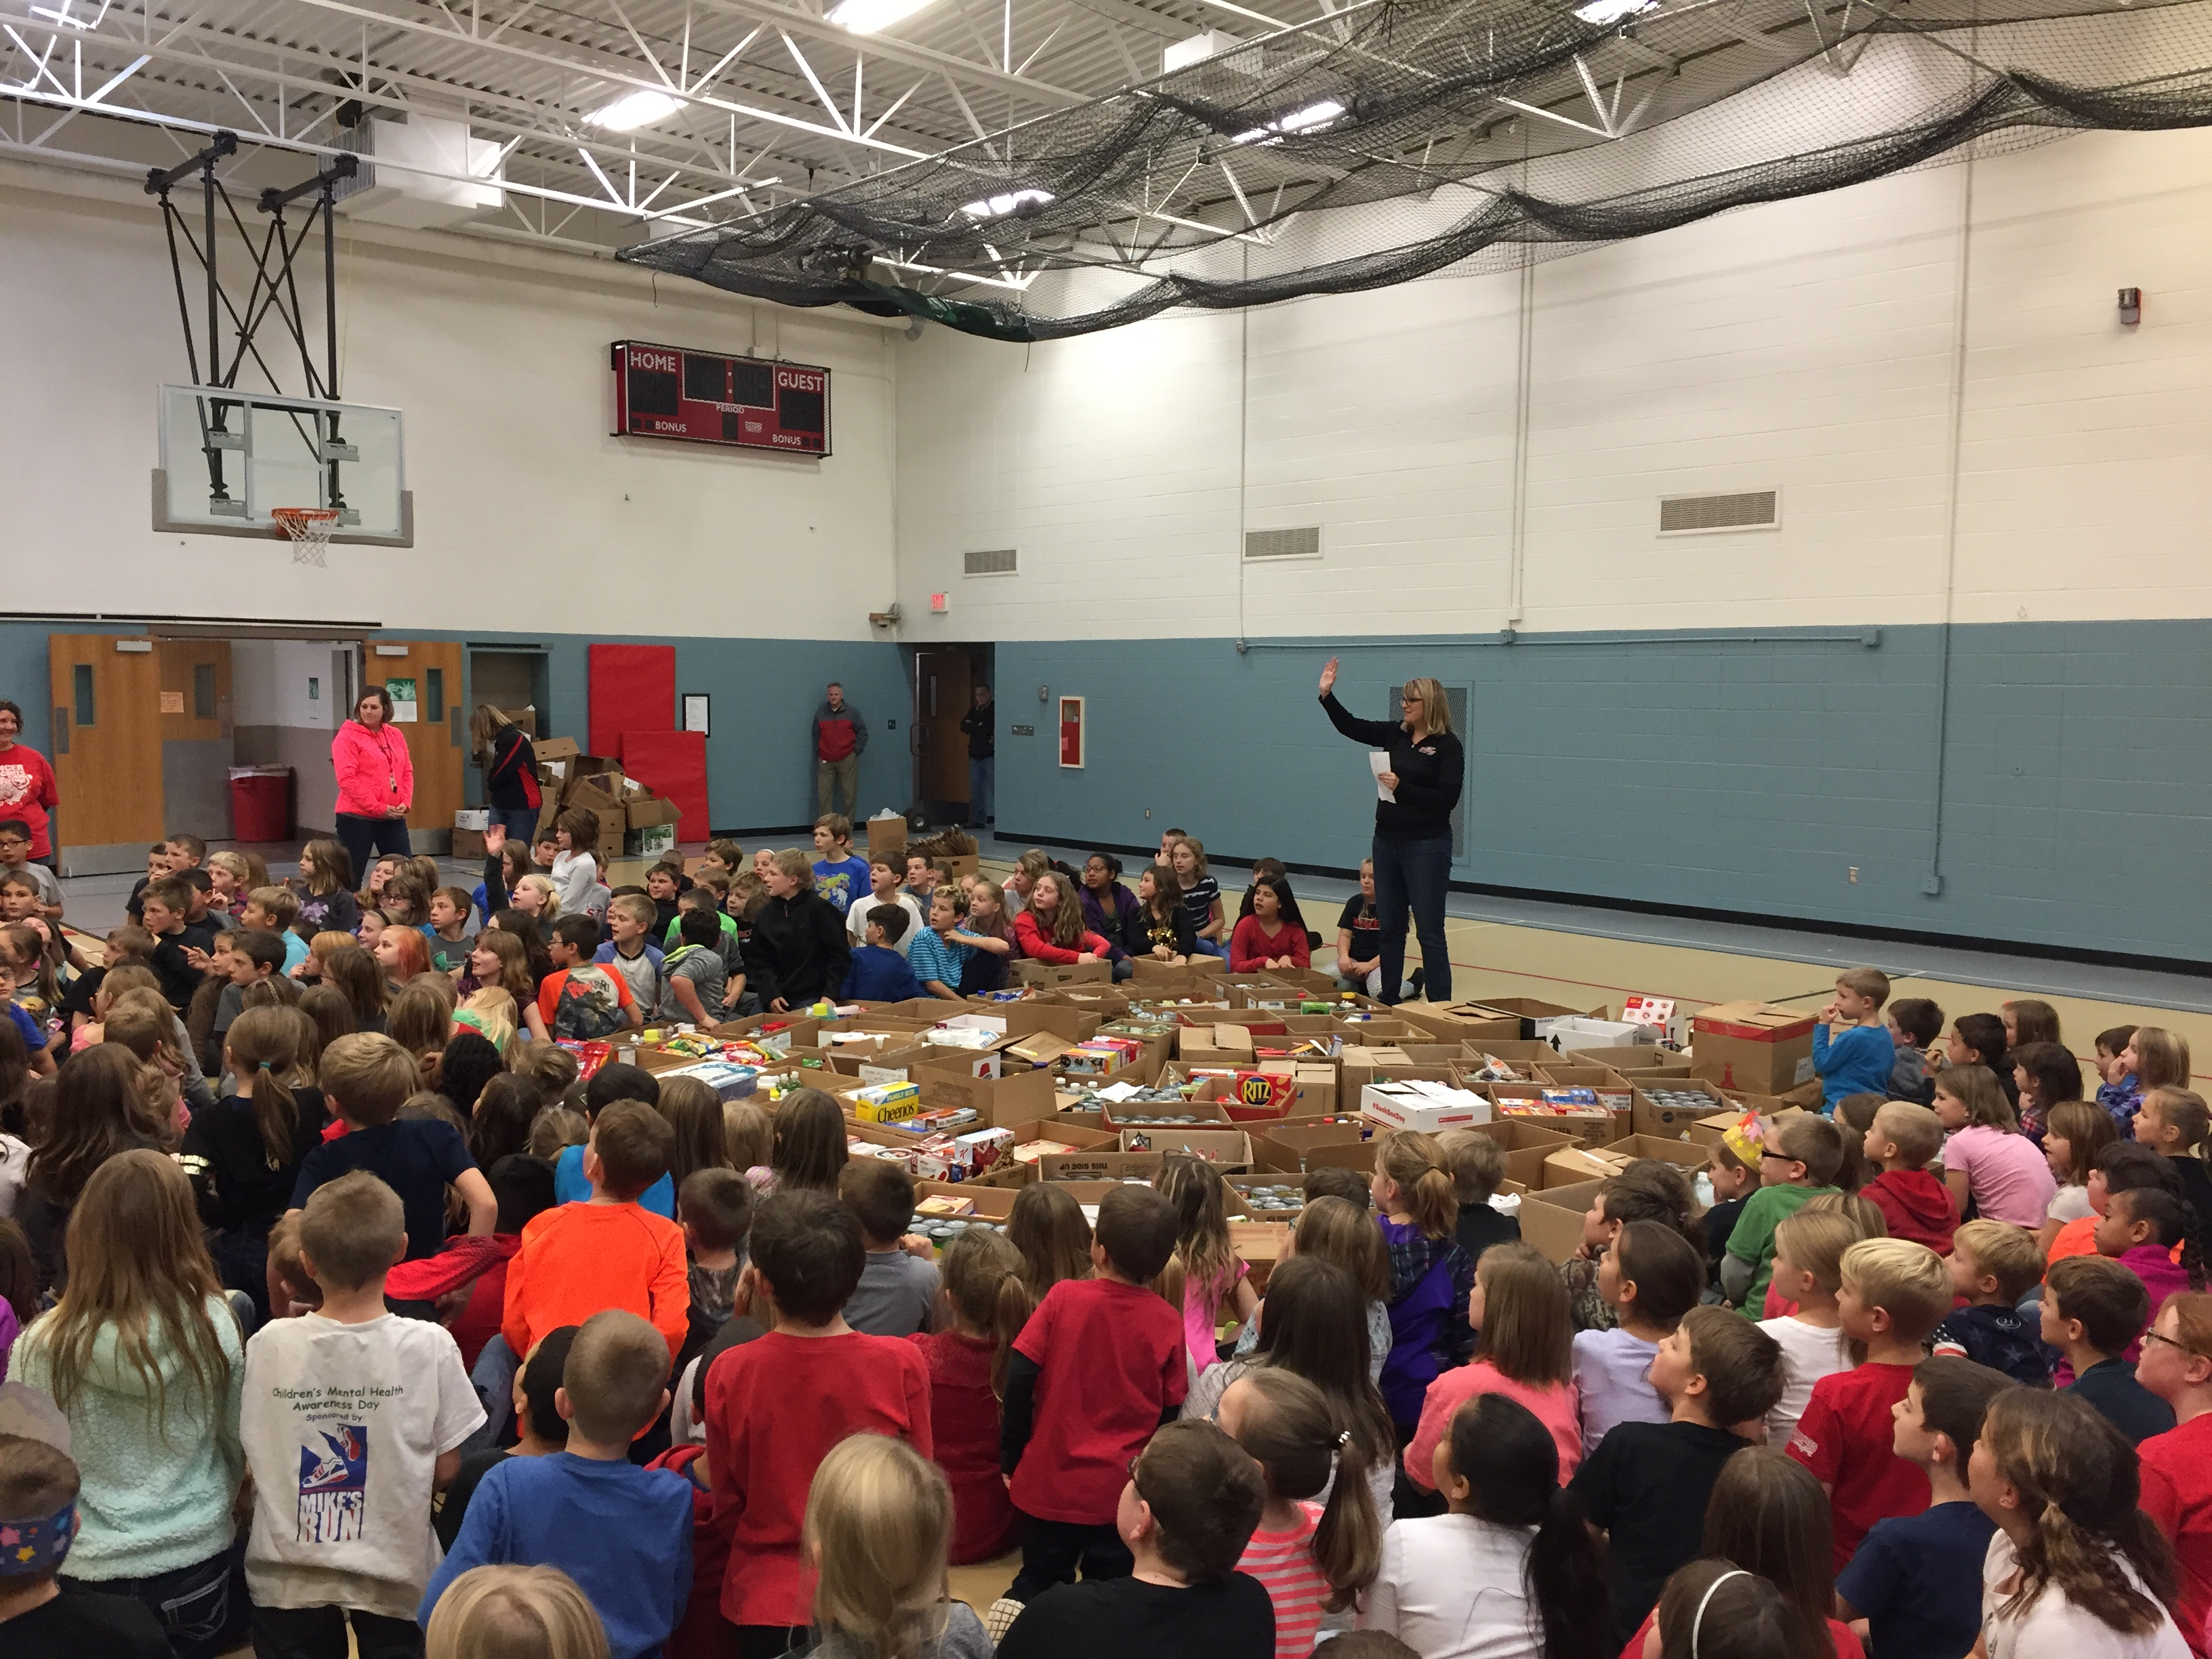 We collected 3,033 items for our local food drive! AWESOME work!!